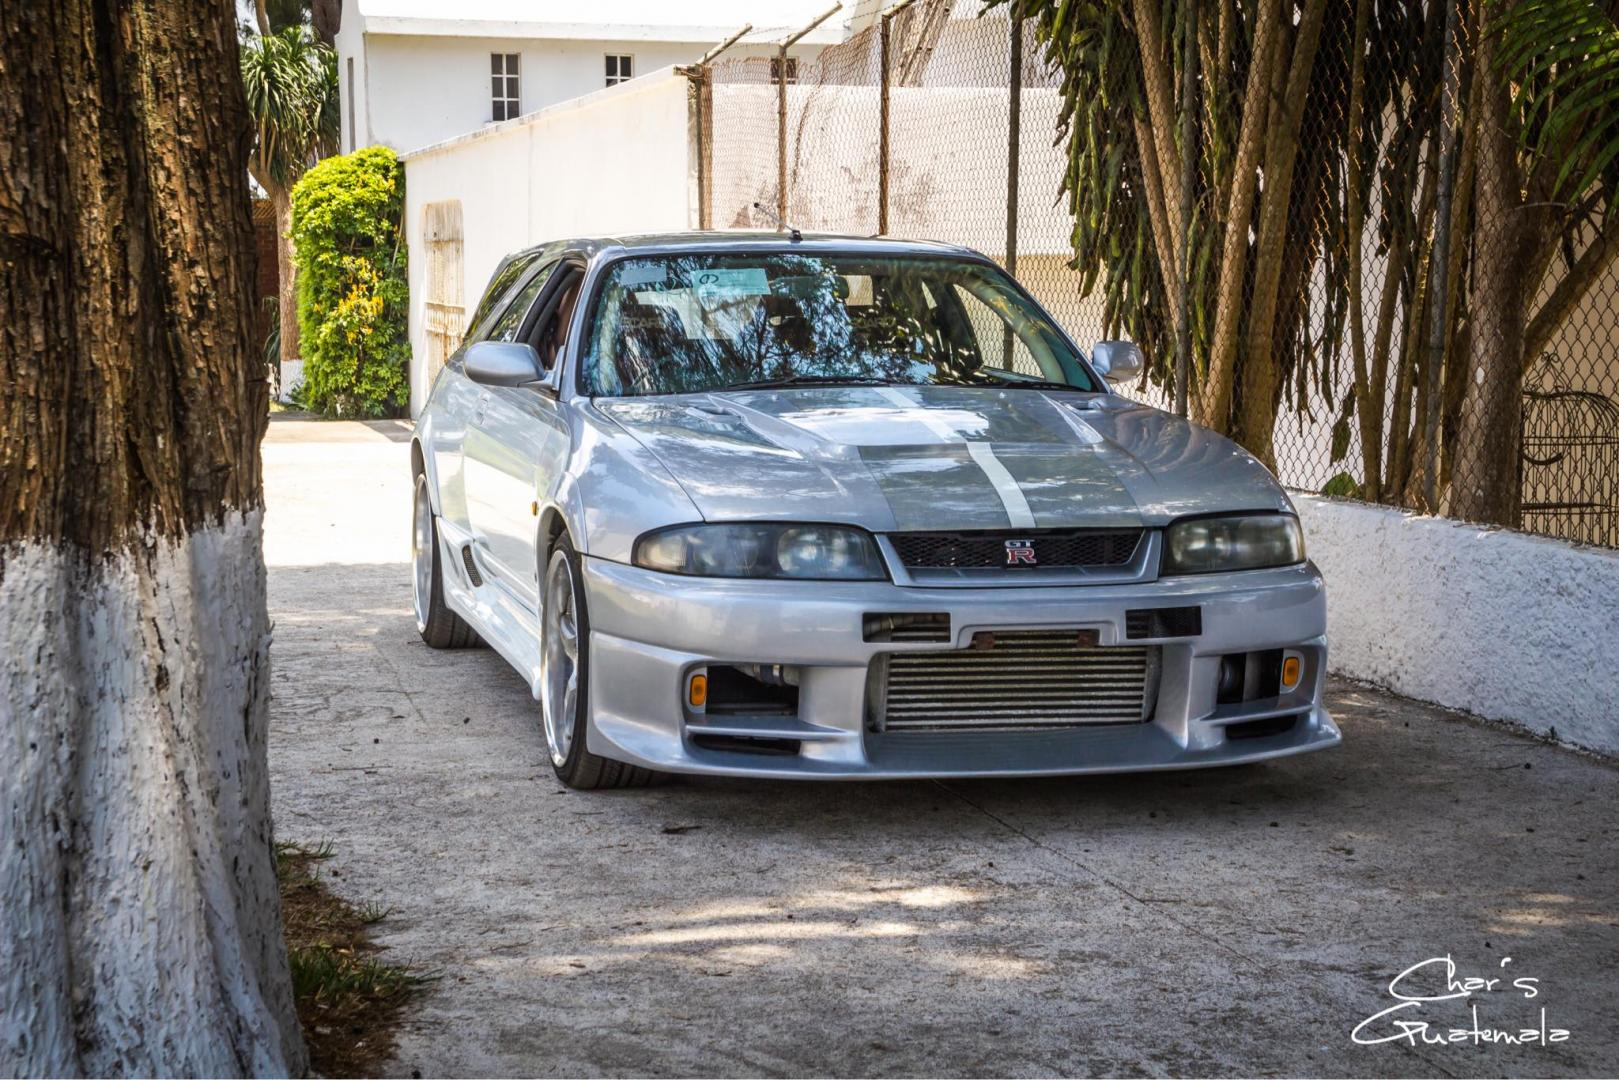 Nissan Skyline GT-R Speed Wagon